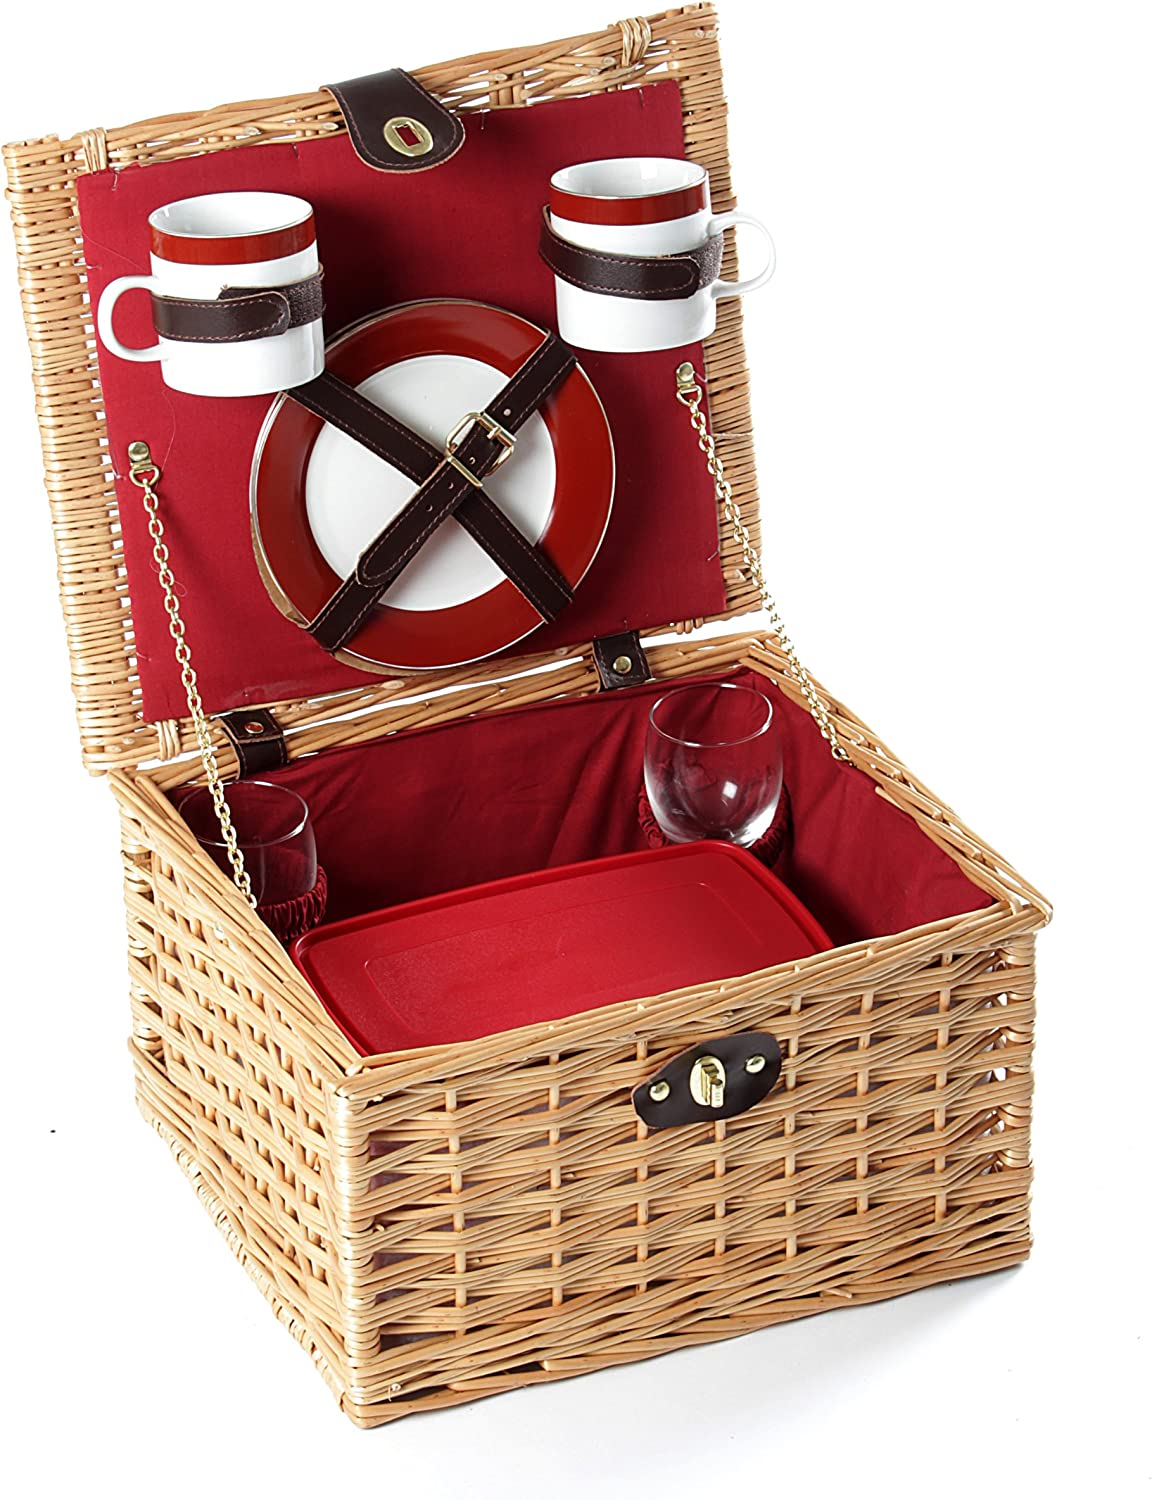 Greenfield Collection Dorchester Willow Picnic Two Hamper Pe Limited Special Price for Shipping included